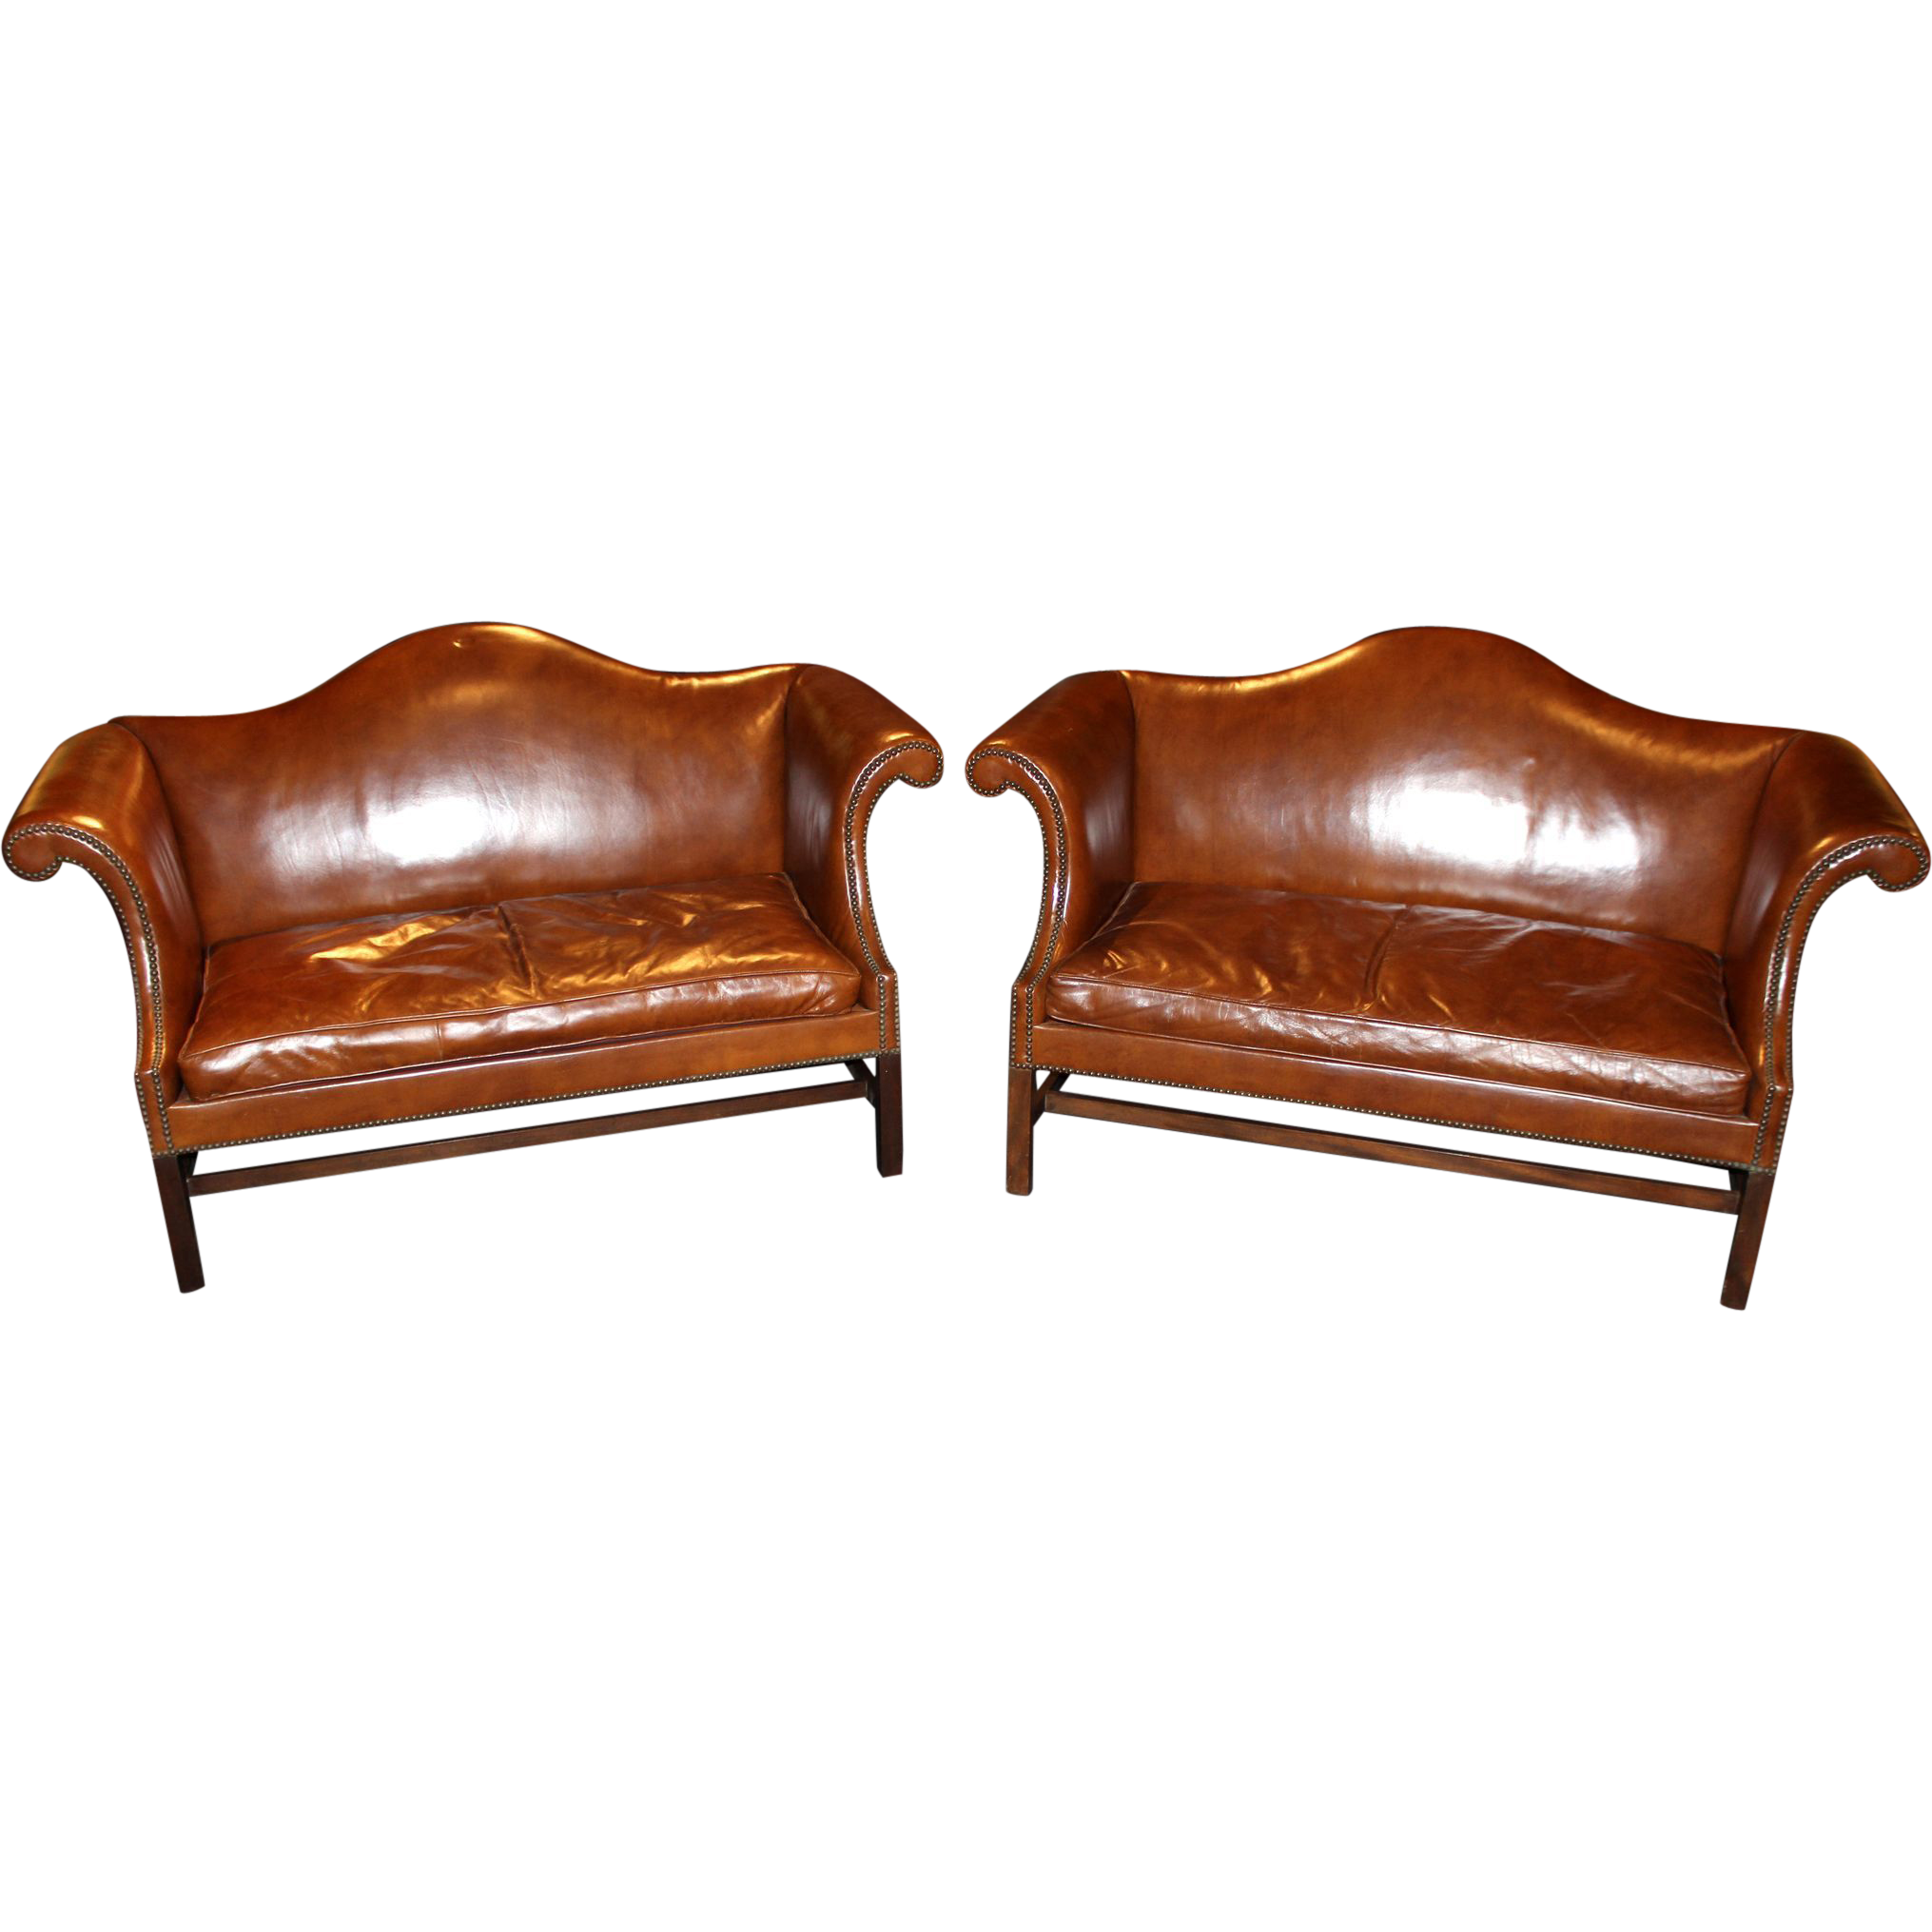 Pair Of Kittinger Leather Camel Back Sofas Williamsburg Adaptation From Nhantiquecoop On Ruby Lane